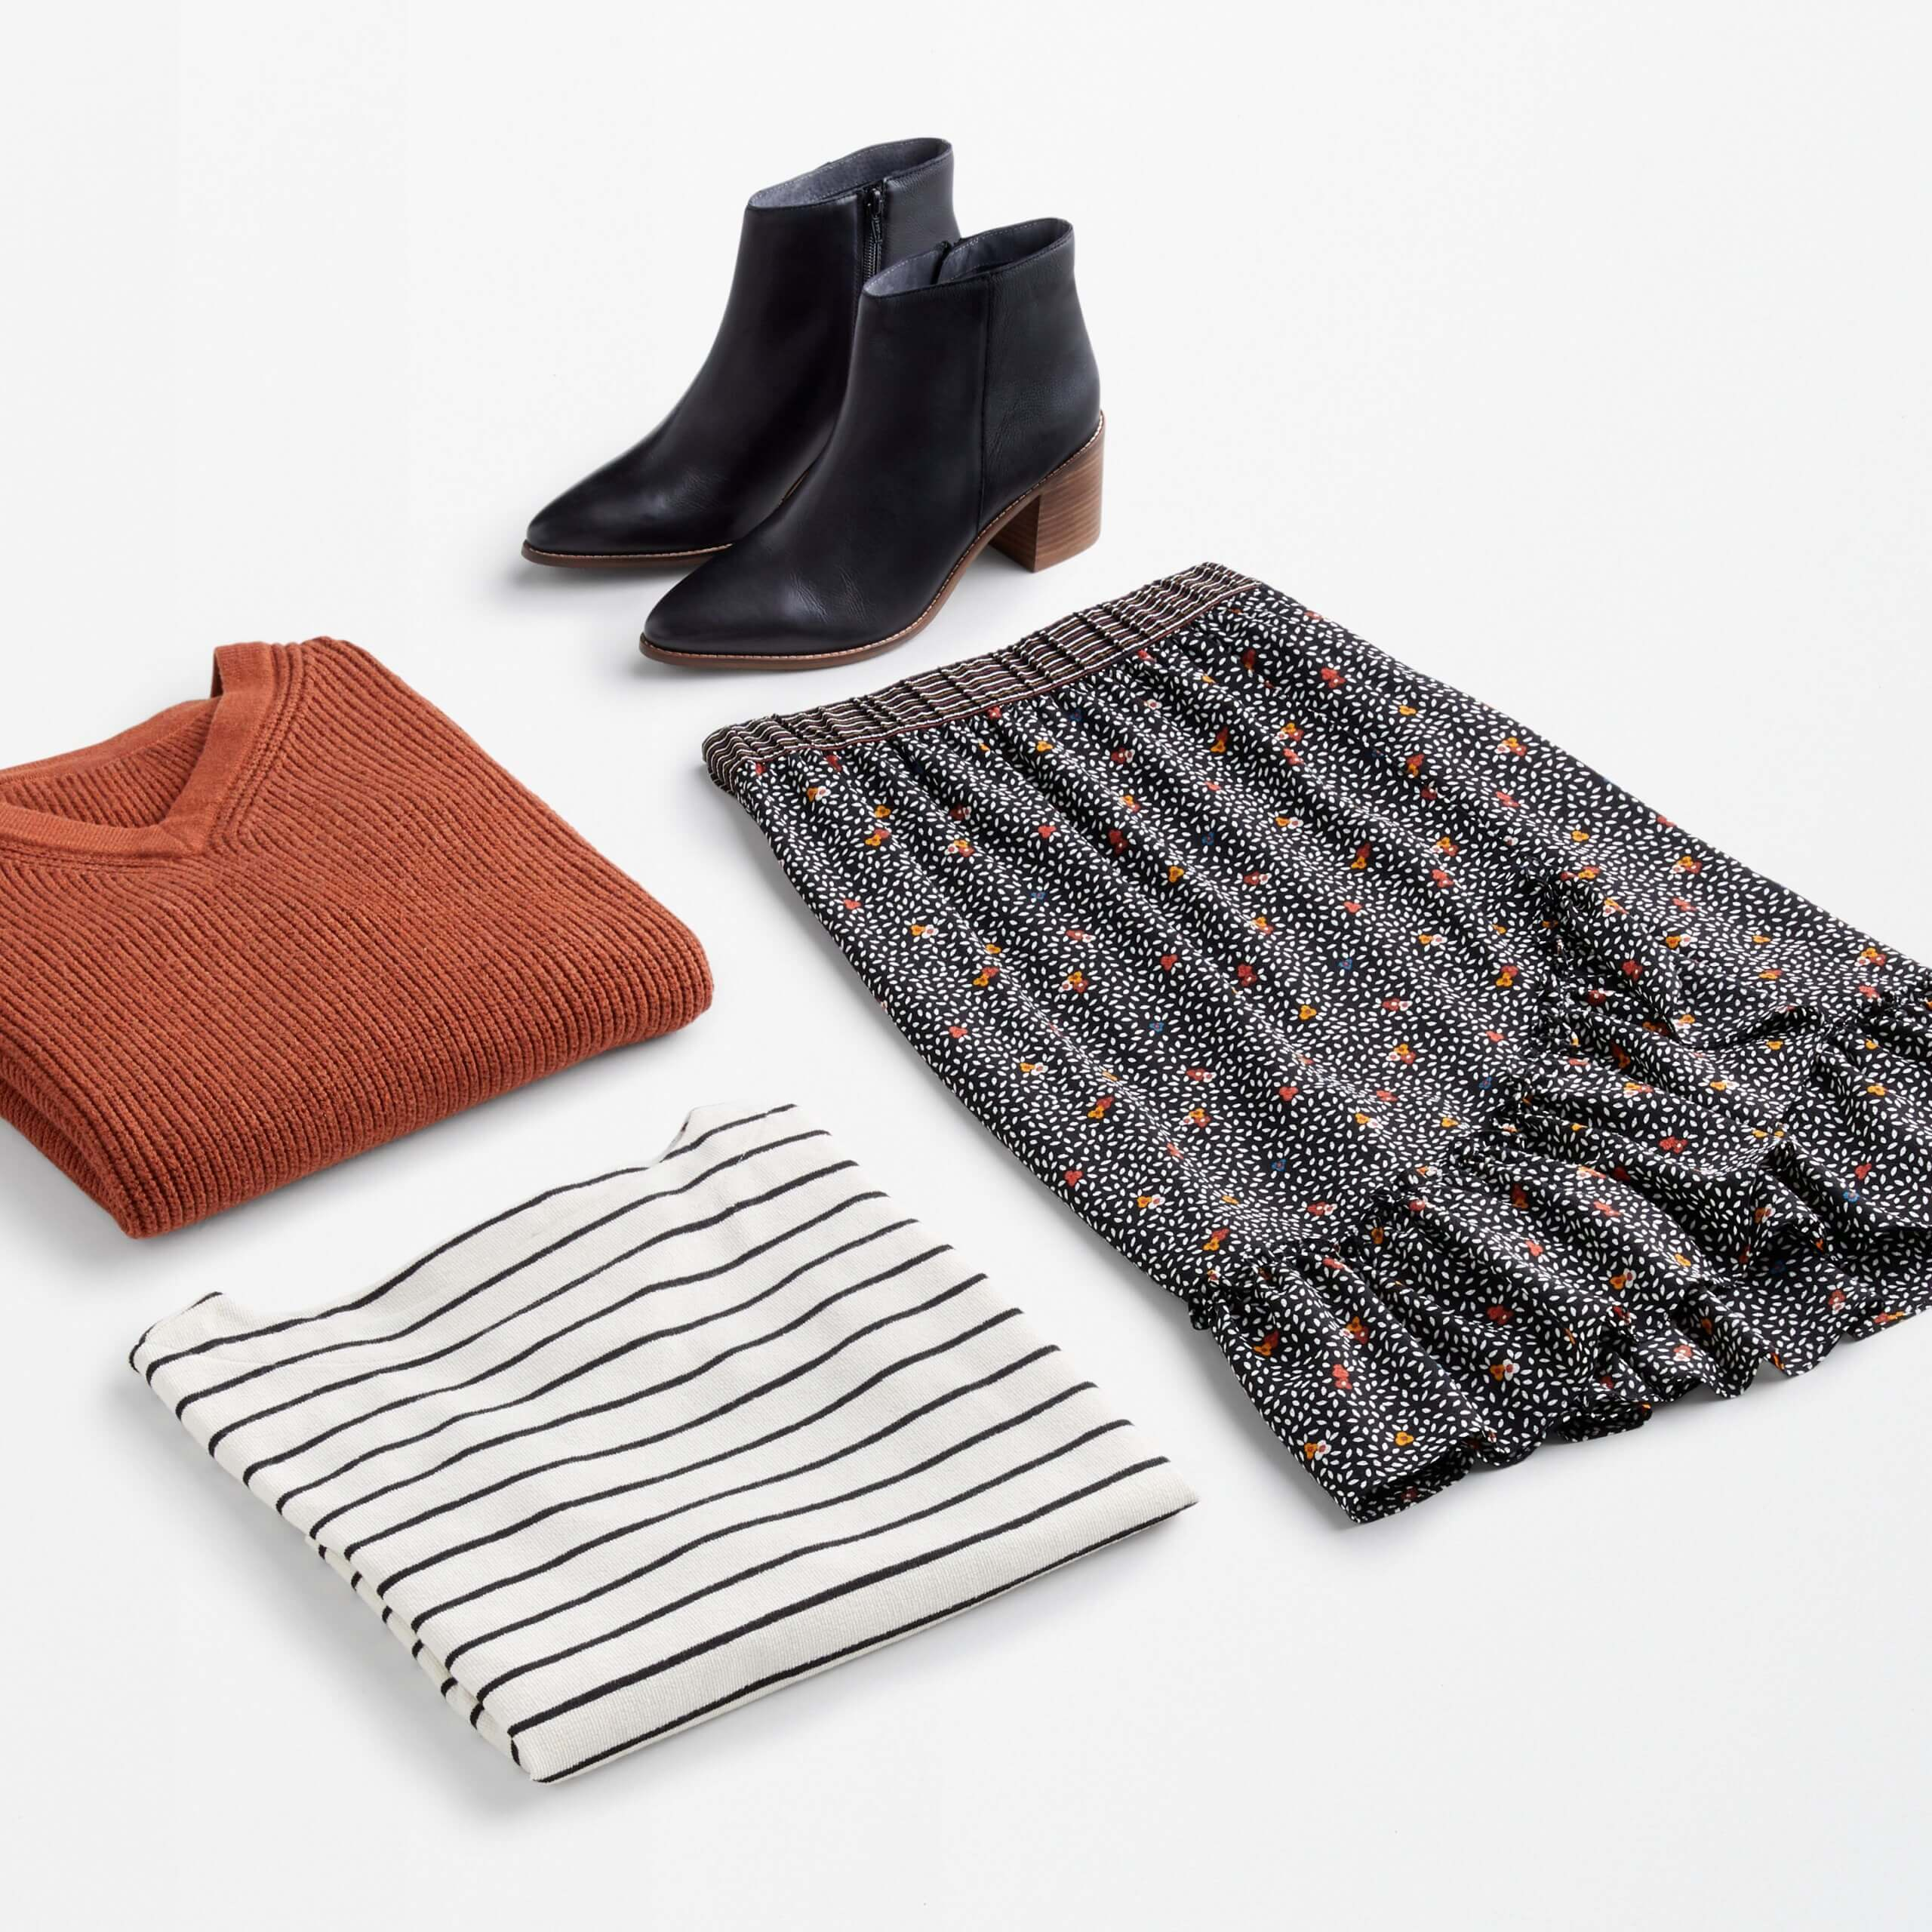 Stitch Fix Women's date night at home featuring floral midi skirt, striped tee, red v-neck sweater and black ankle boots.